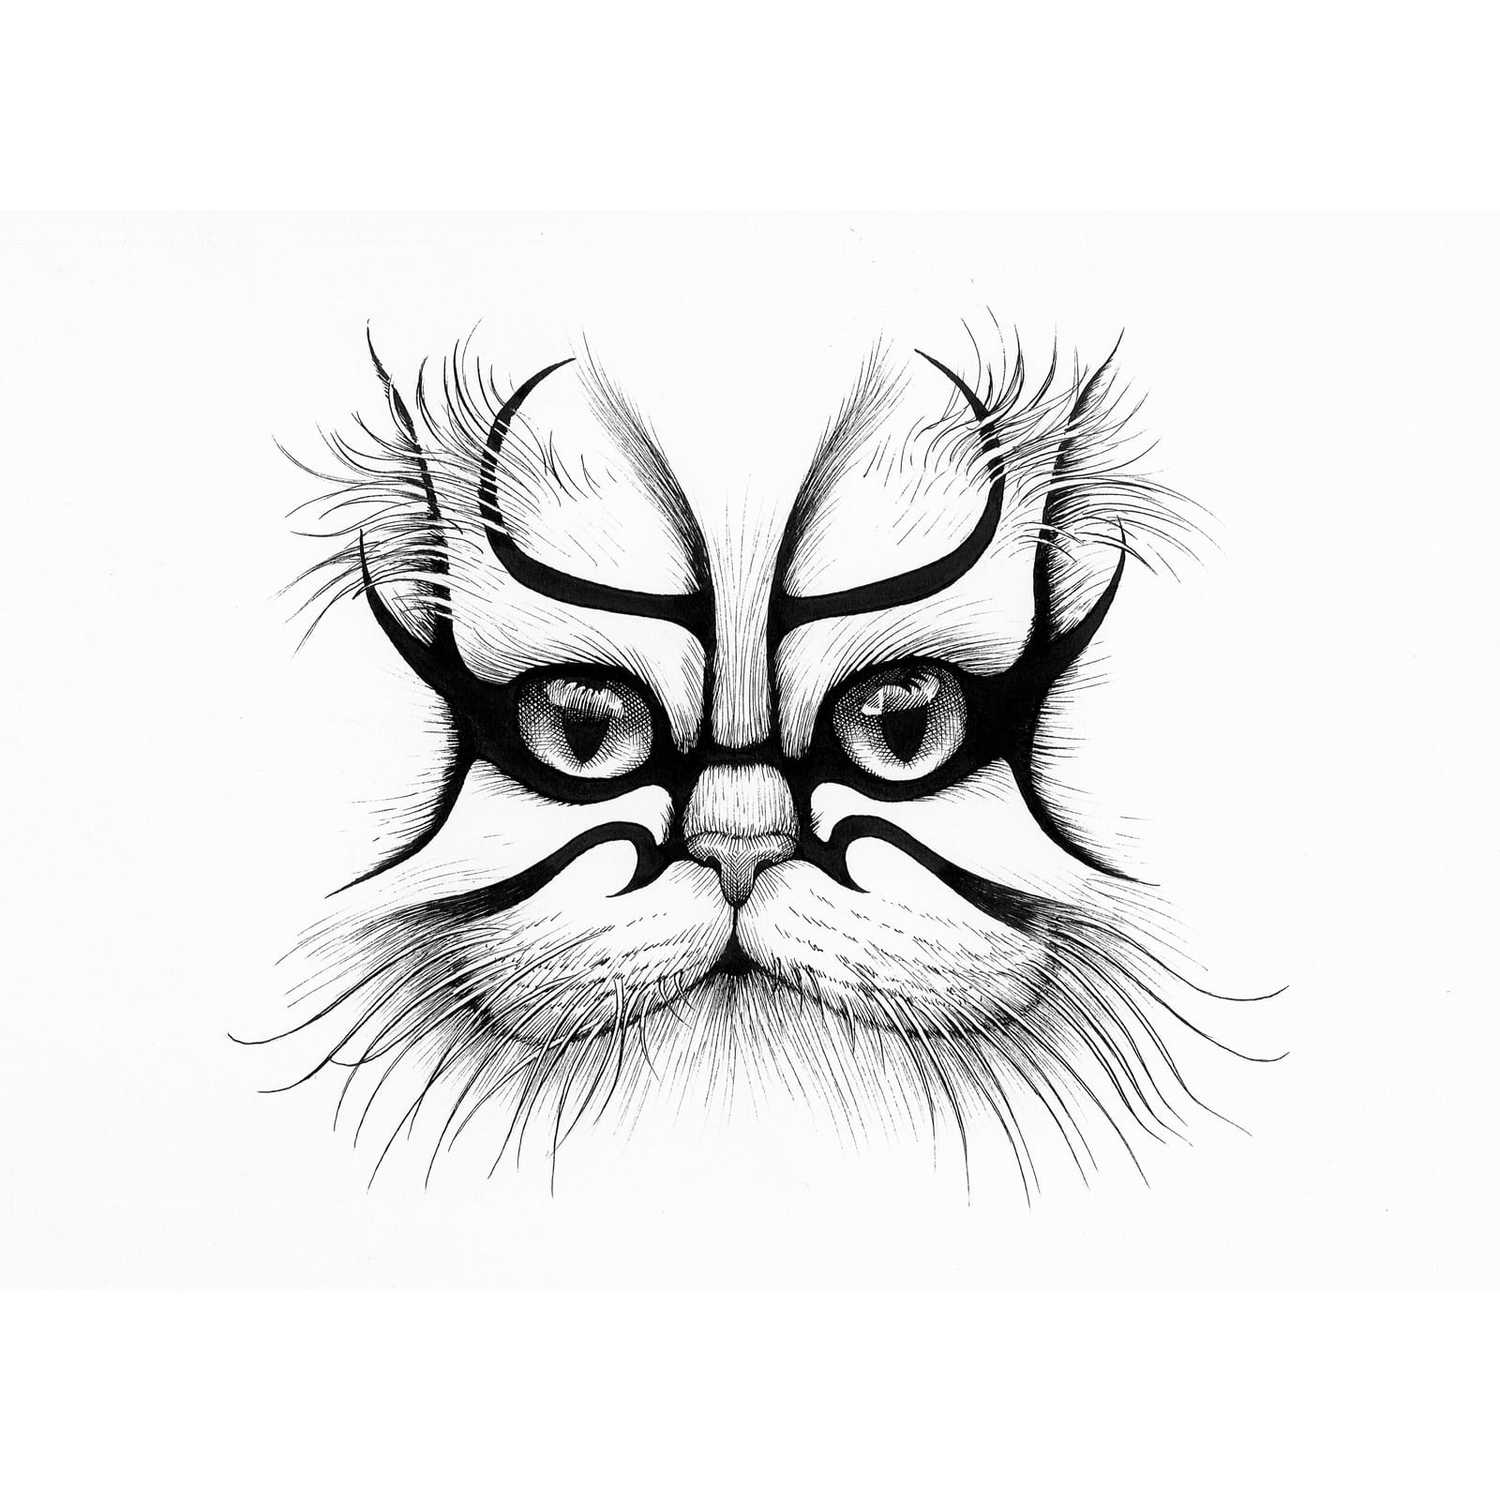 Kabouki Cat Intricate Ink-0